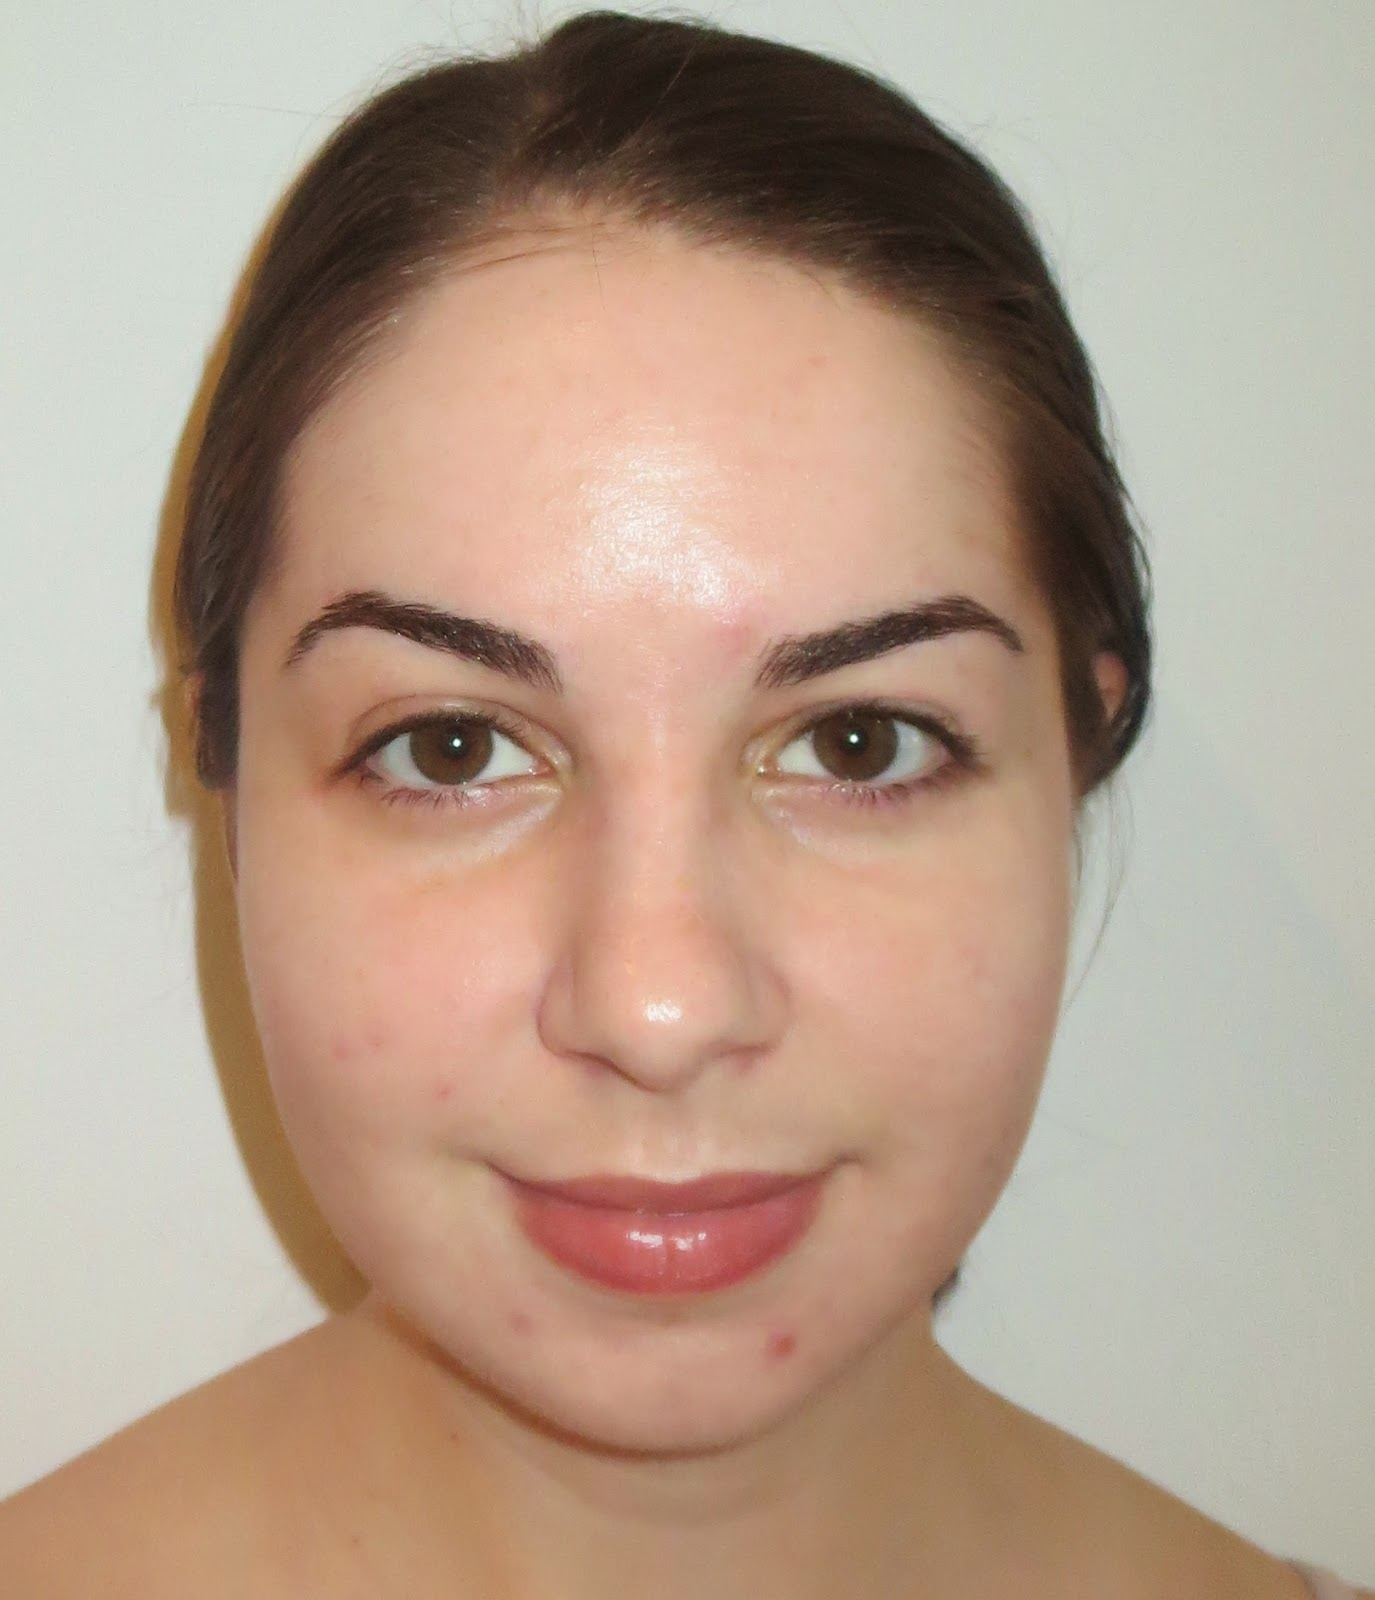 a picture of a female with mild acne